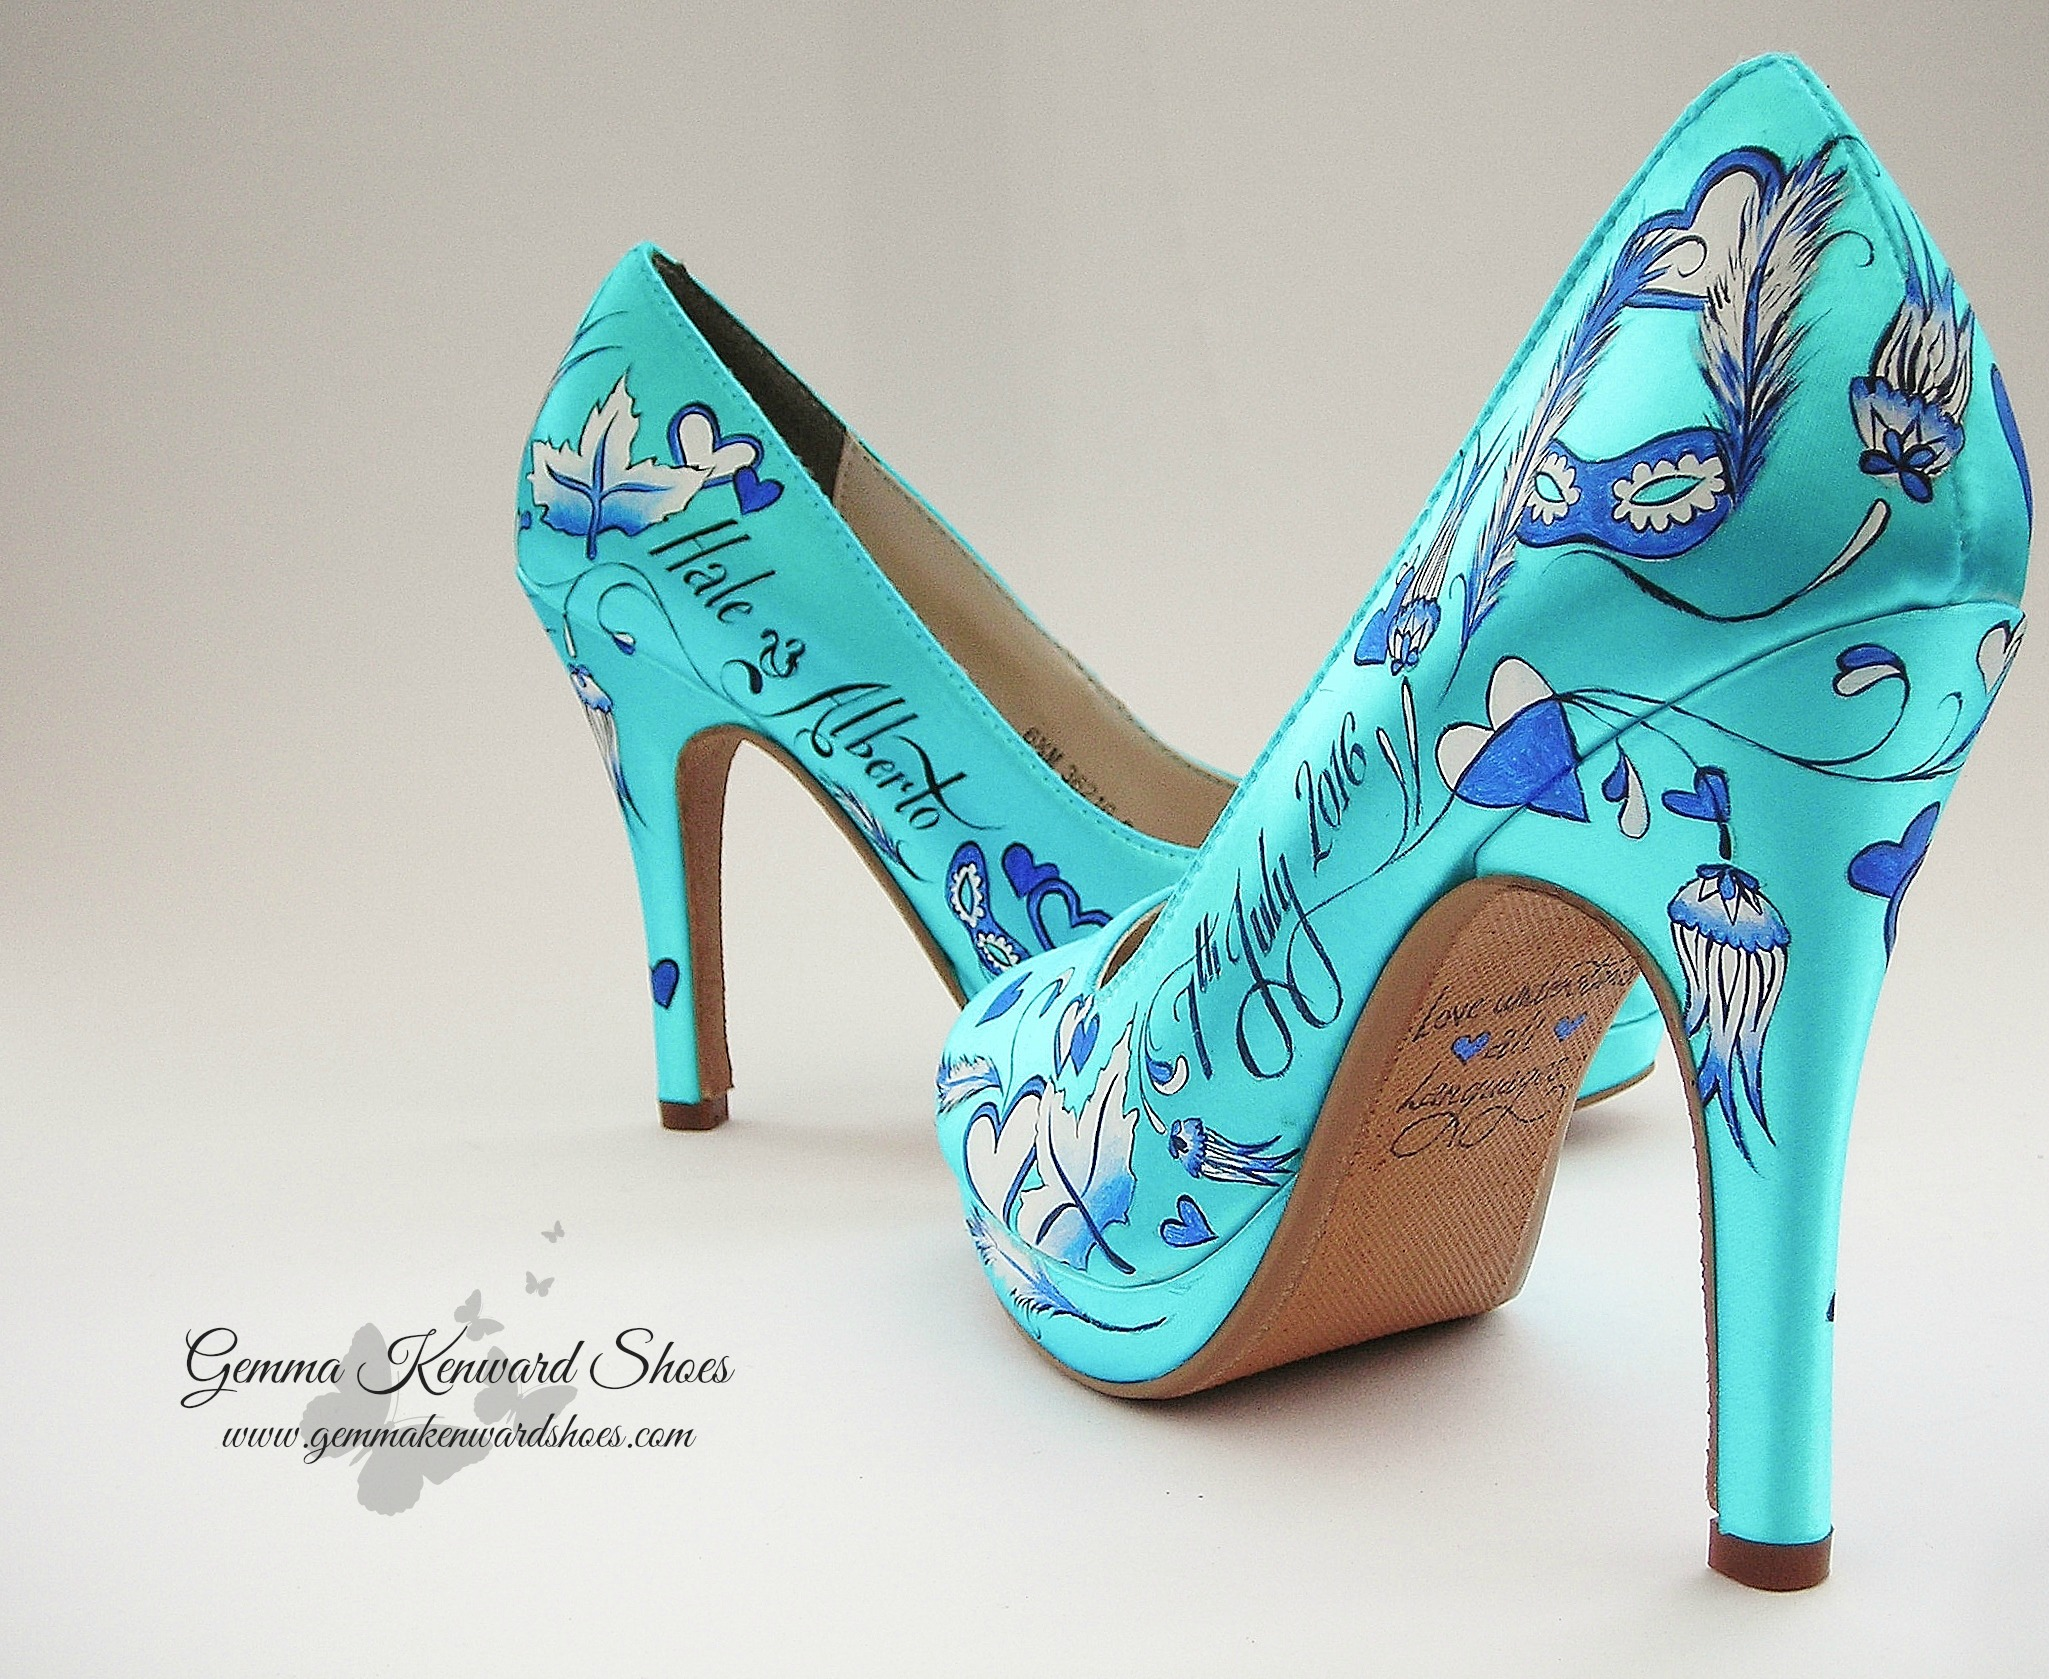 China print inspired wedding shoes for a bride in Greece.